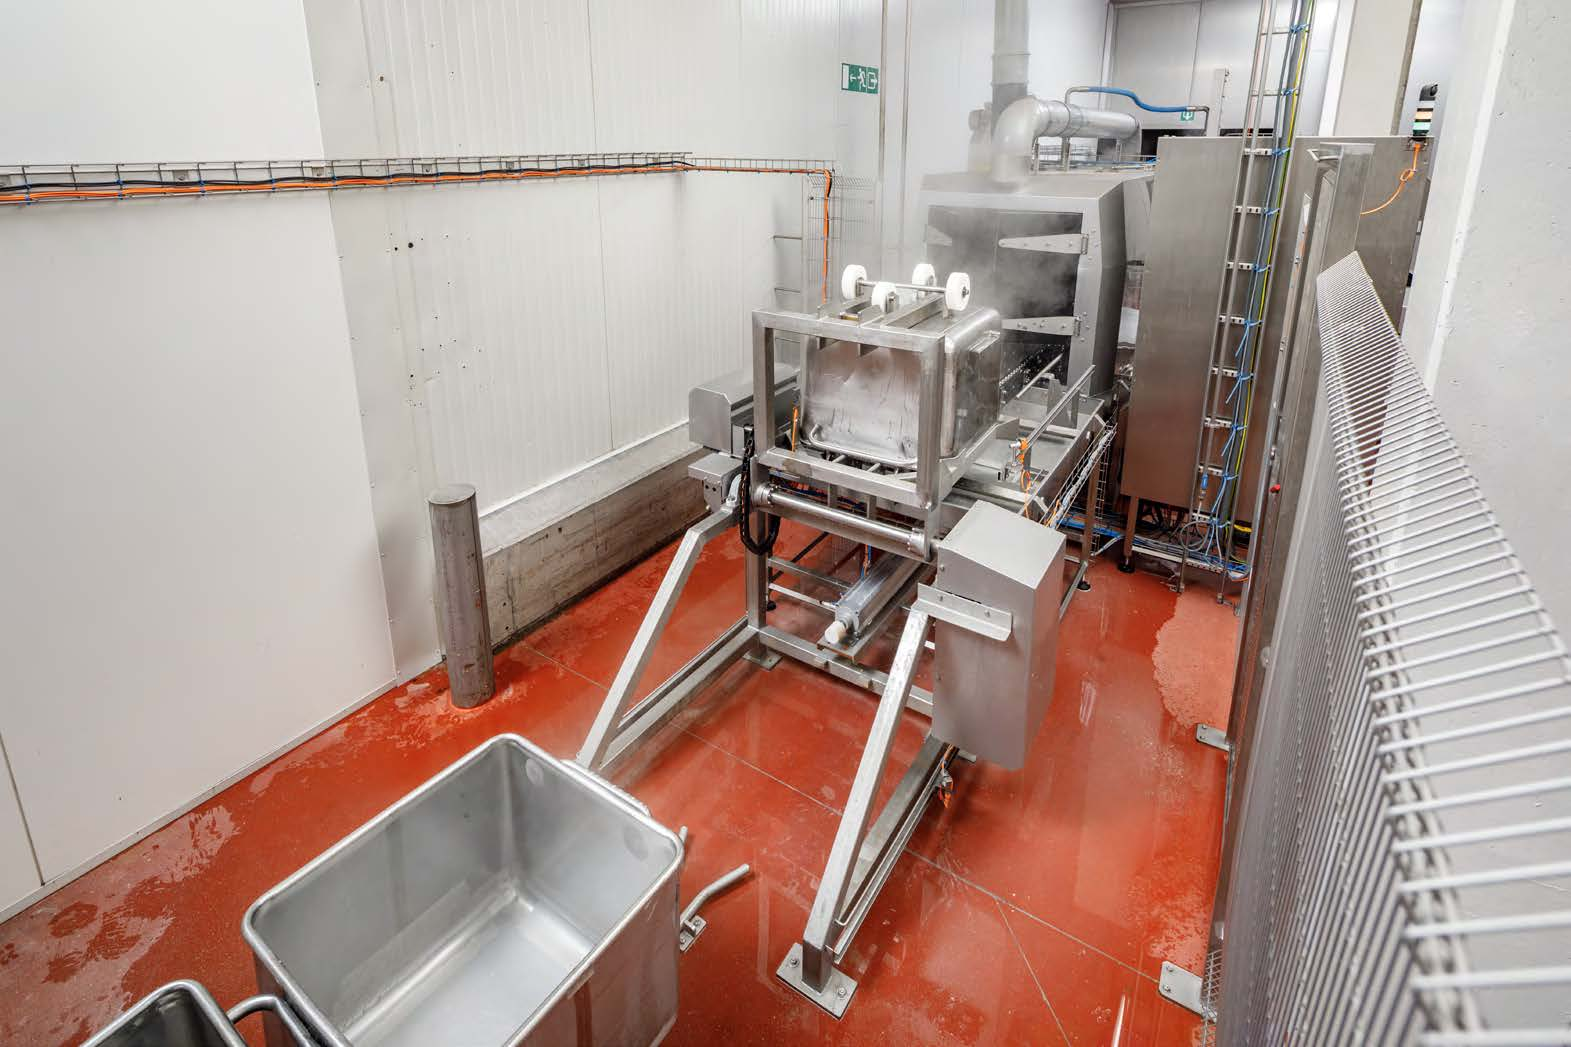 Cretel container washer vegetable industry